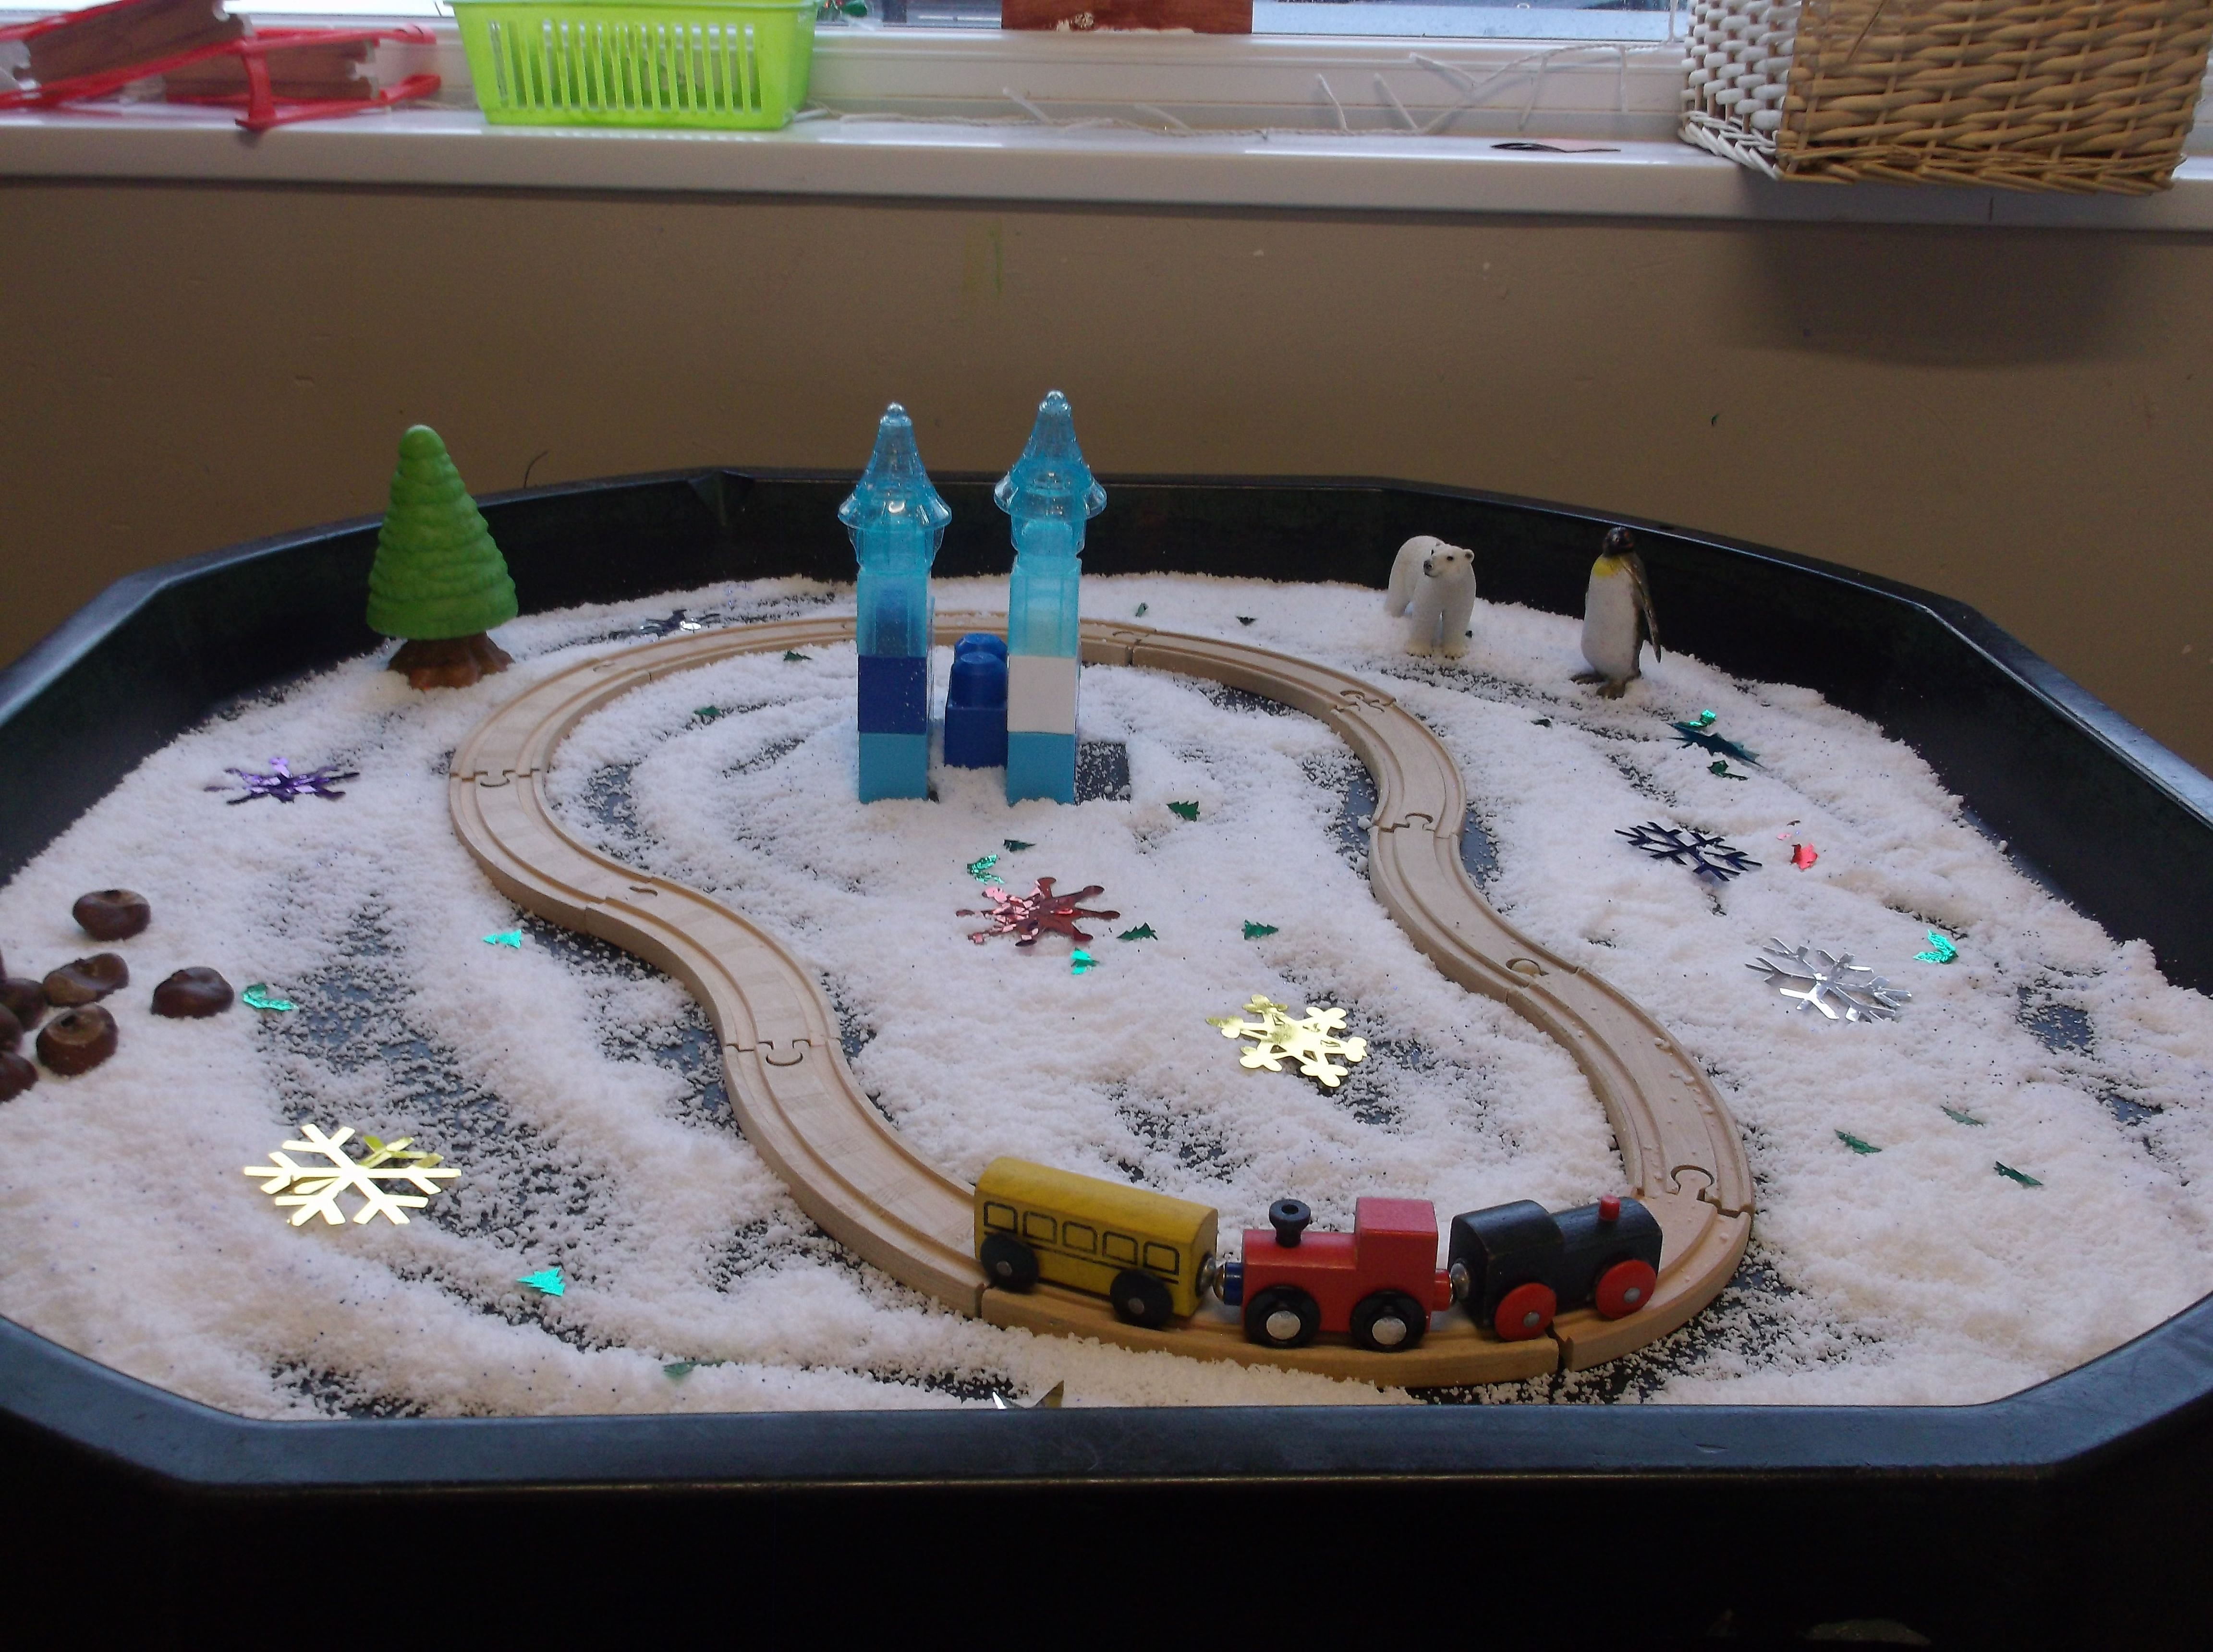 White apron poundland - Polar Express Scene We Put The Train And Train Track In The Tuff Tray But